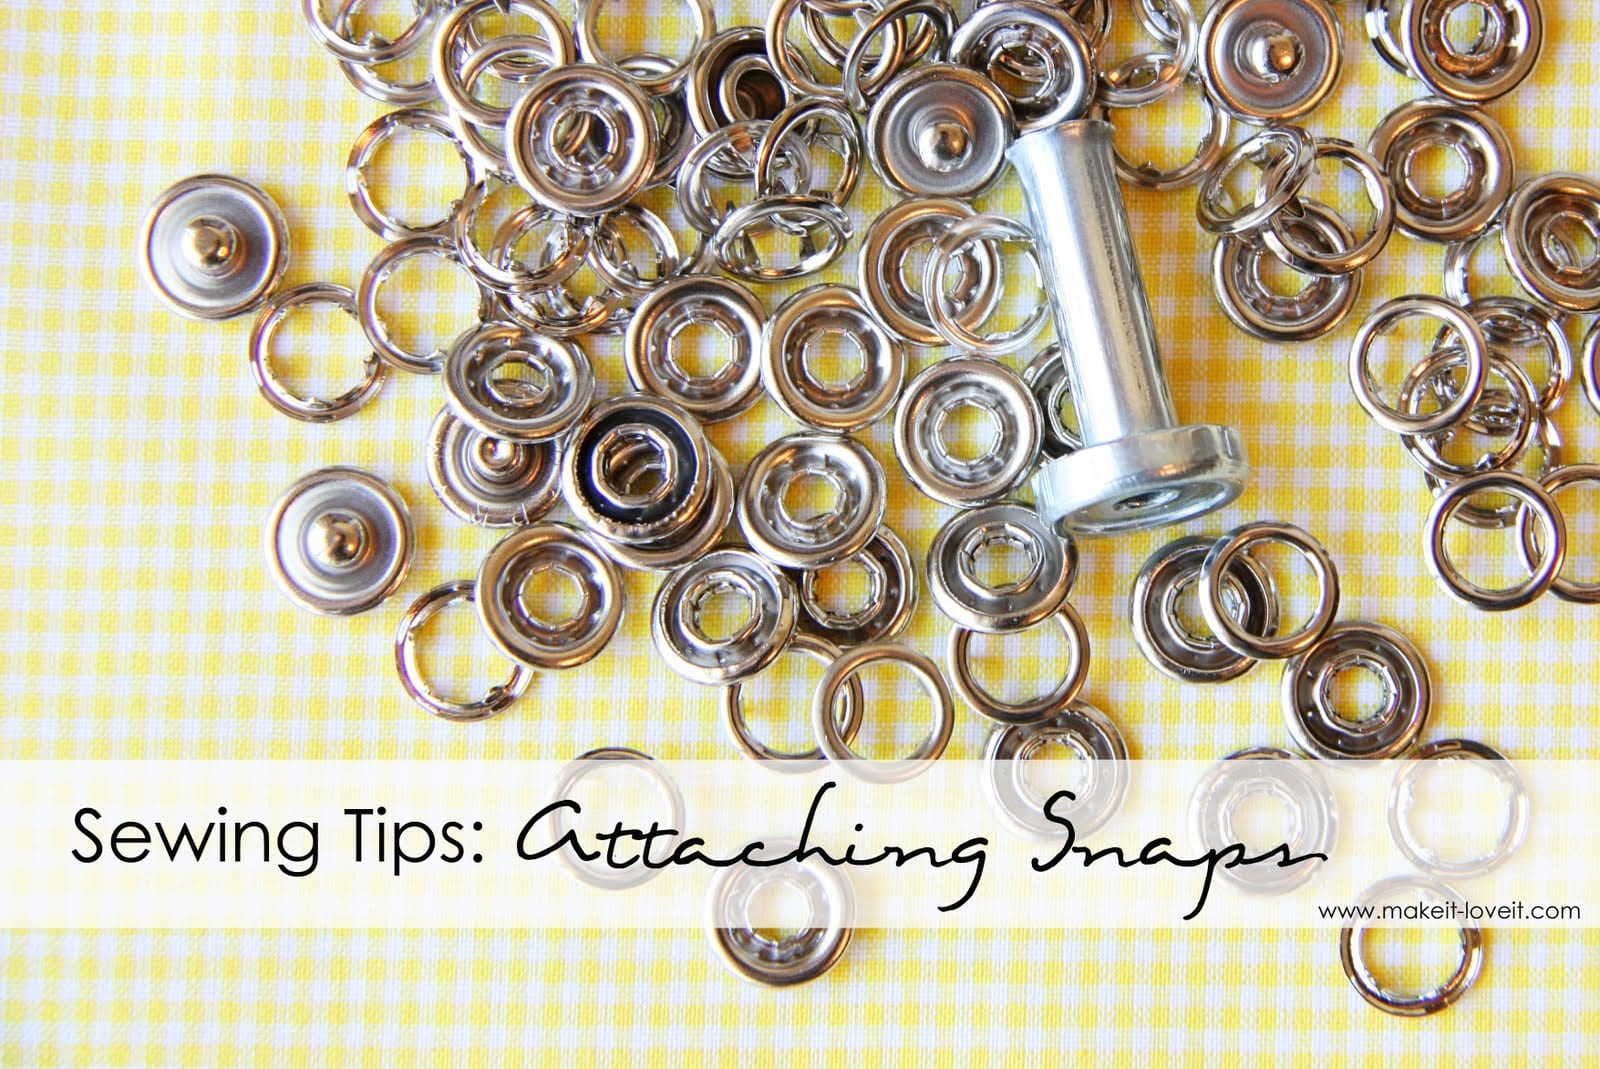 Sewing Tips: Attaching Snaps